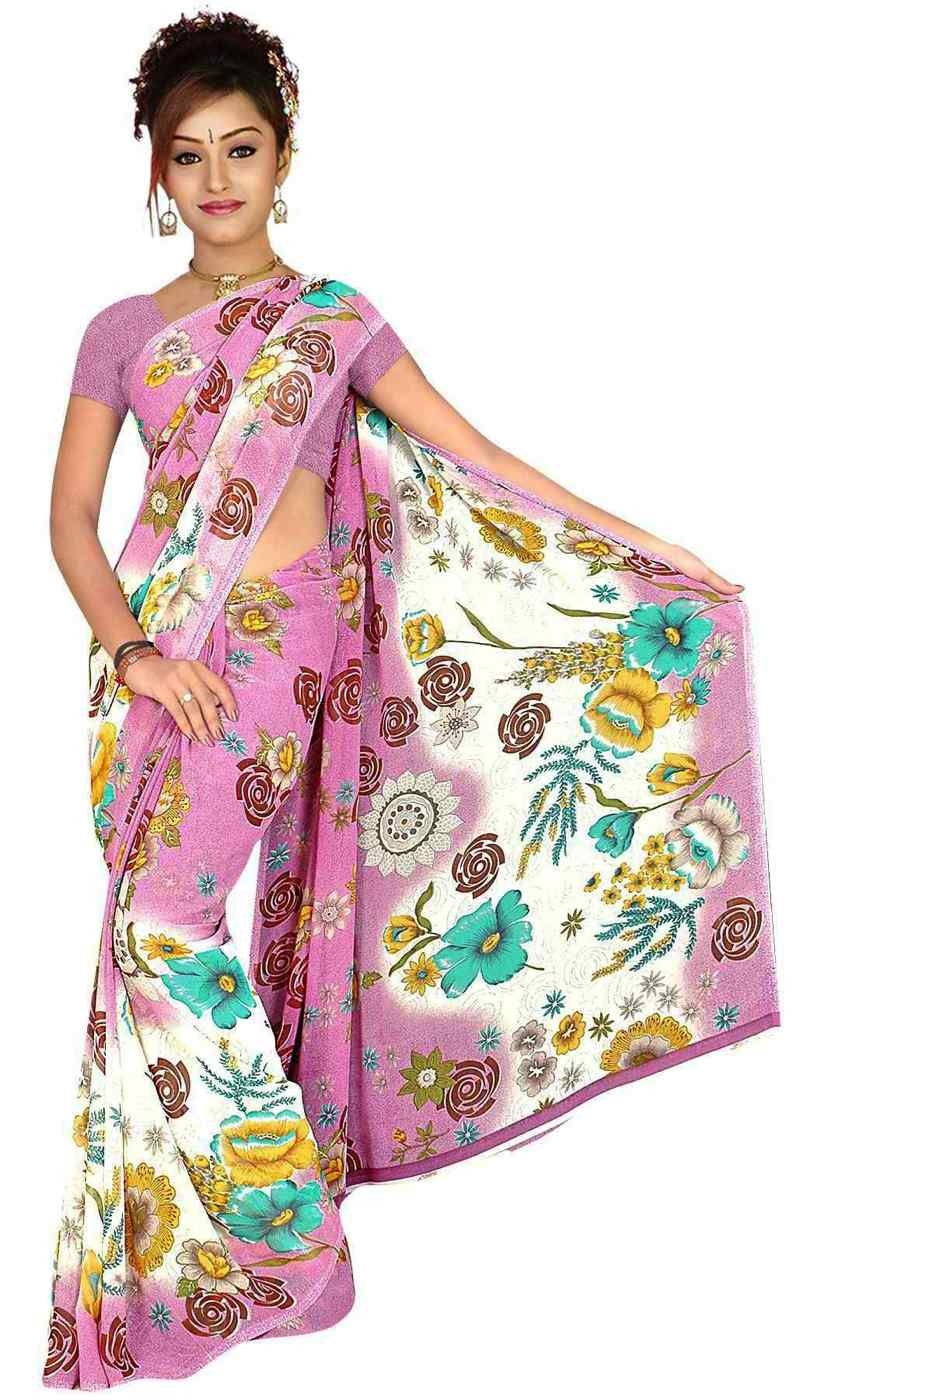 Indian Selections Chaman Georgette Printed Casual Saree Sari Bellydance fabric at Sears.com